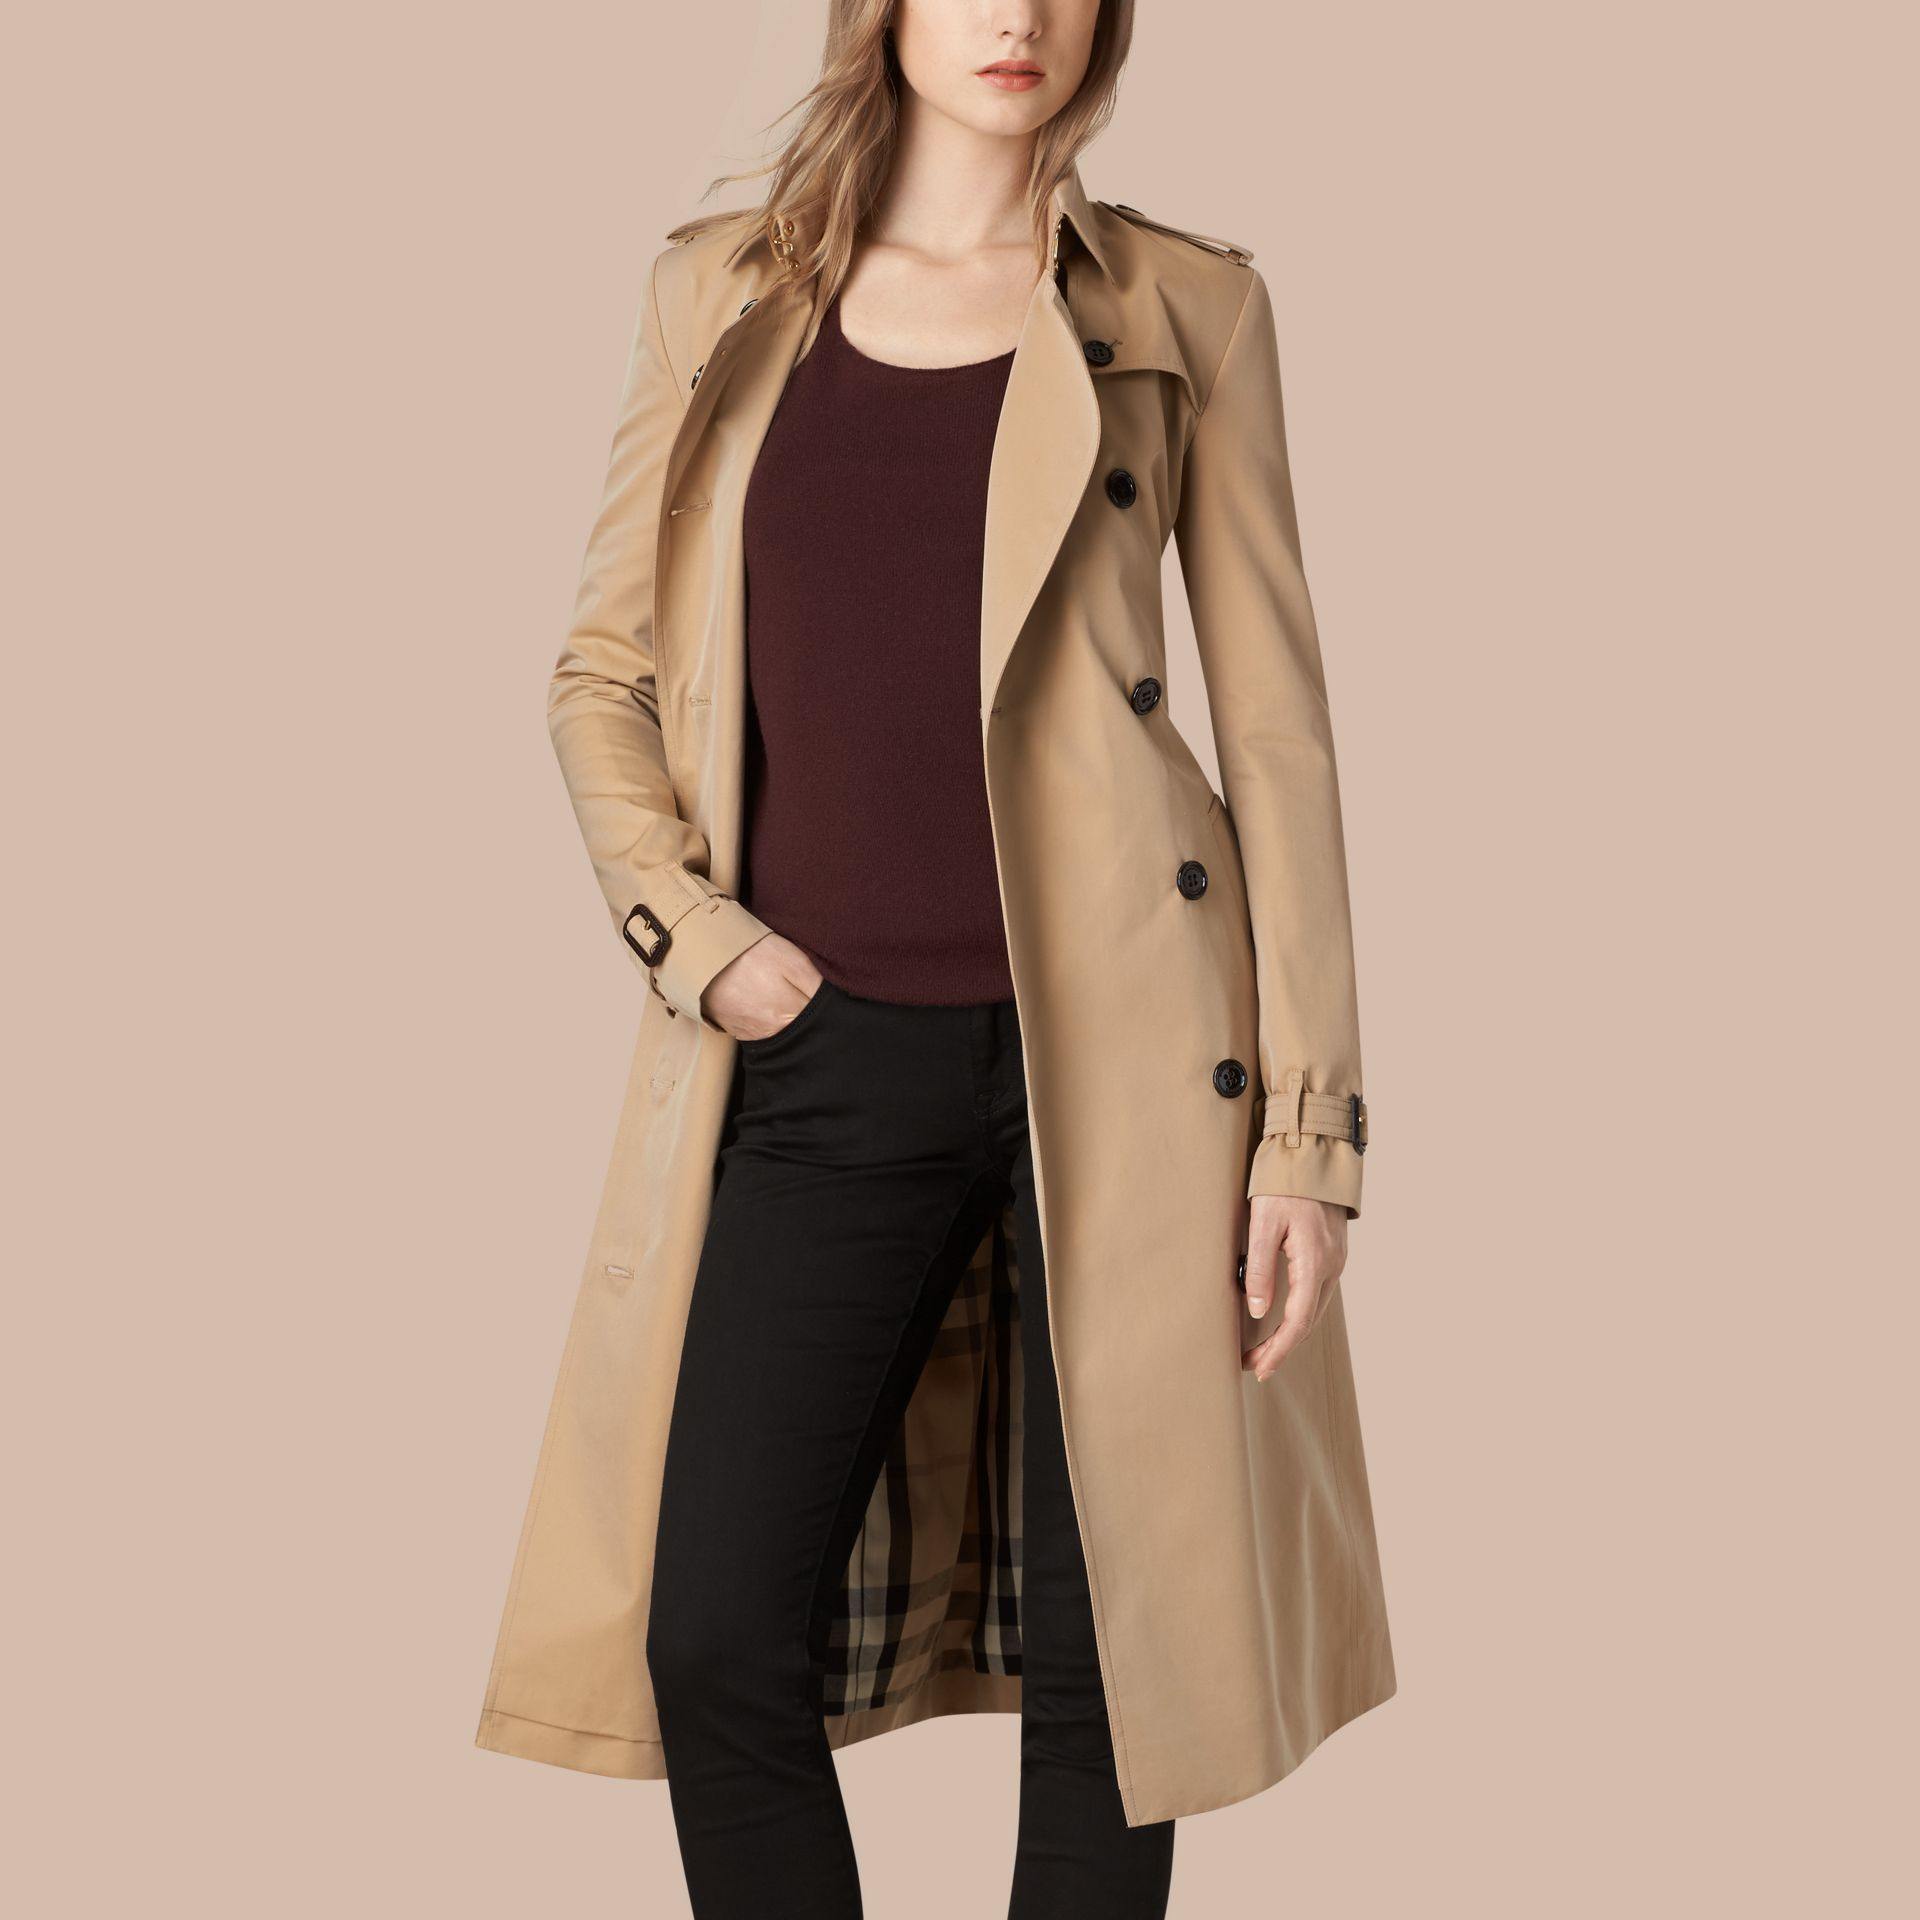 Cotton Gabardine Trench Coat - gallery image 2